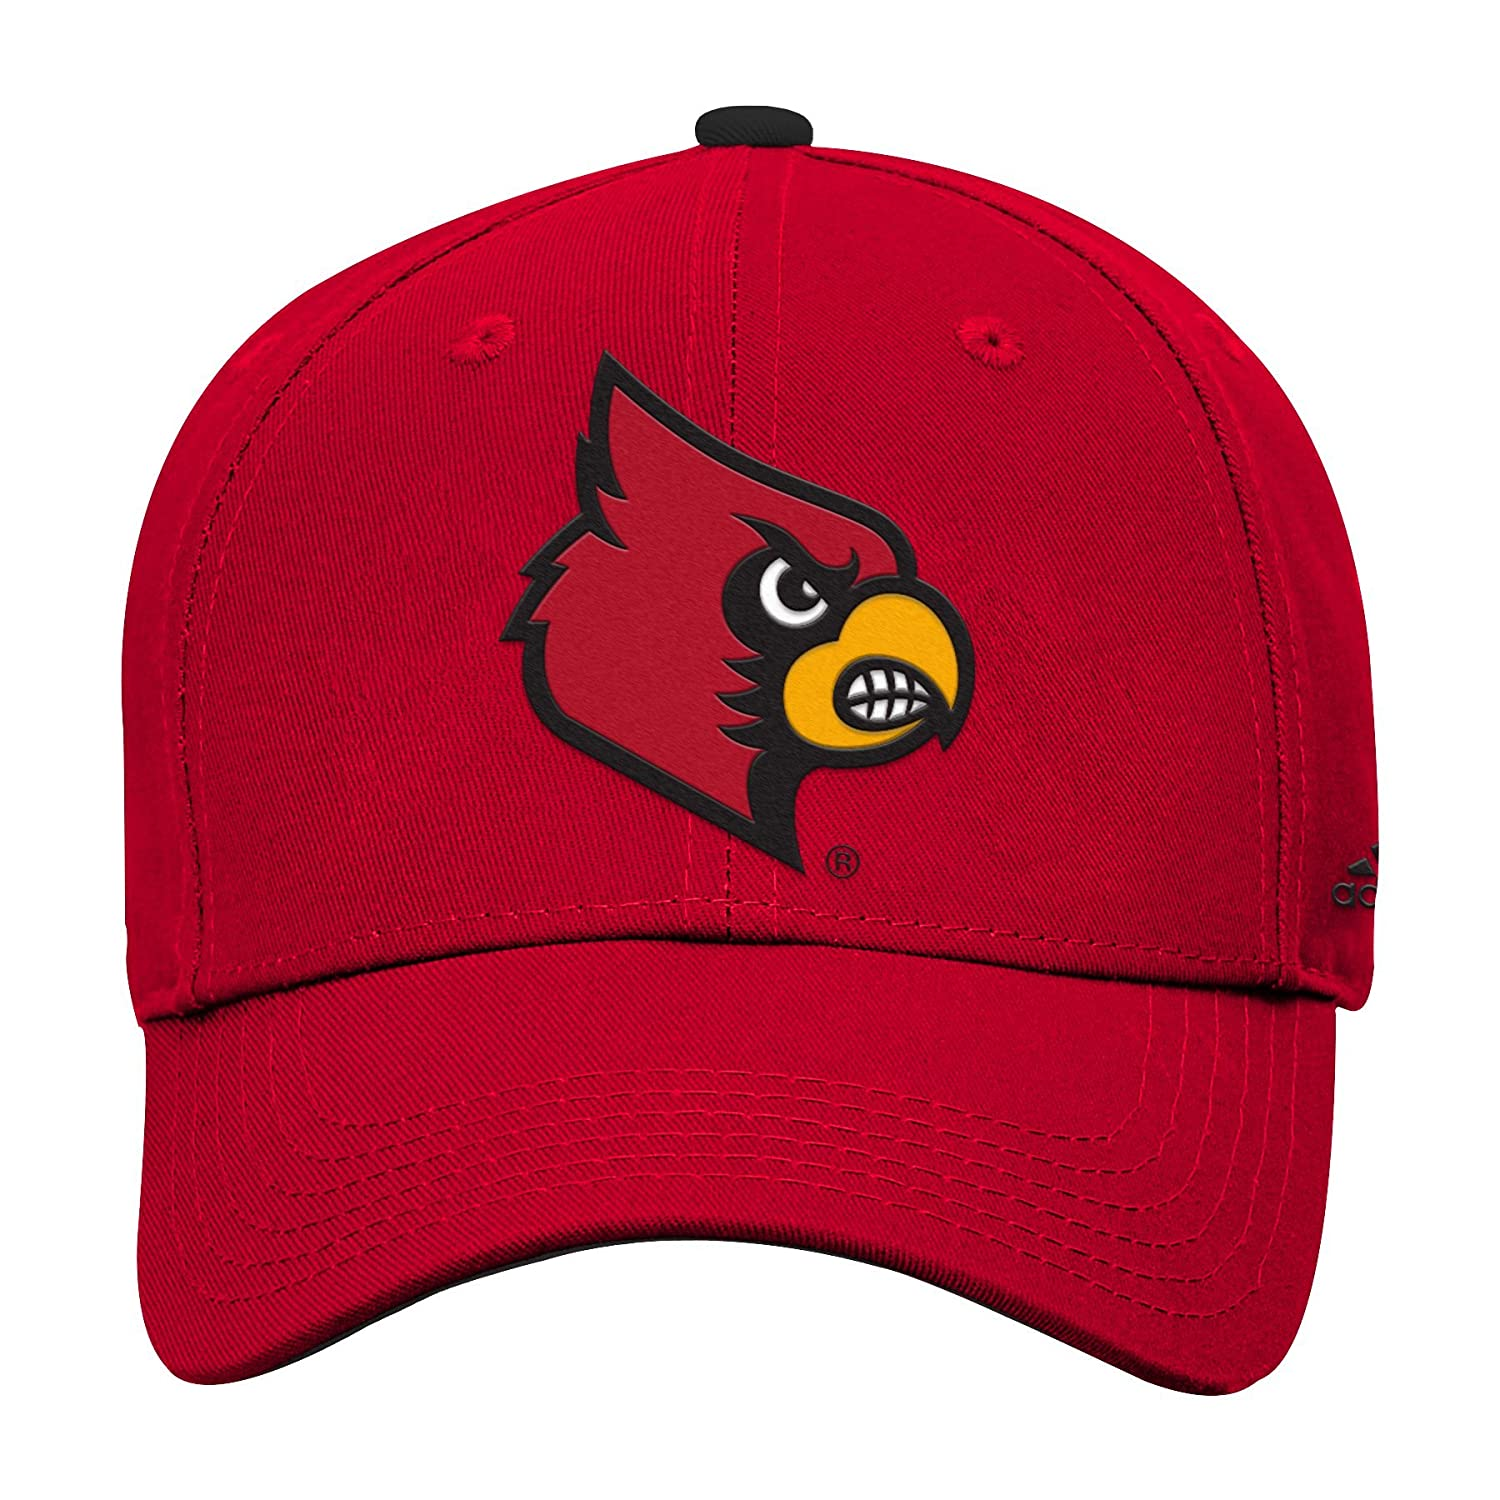 Outerstuff NCAA Boys Basic Structured Adjustable Hat